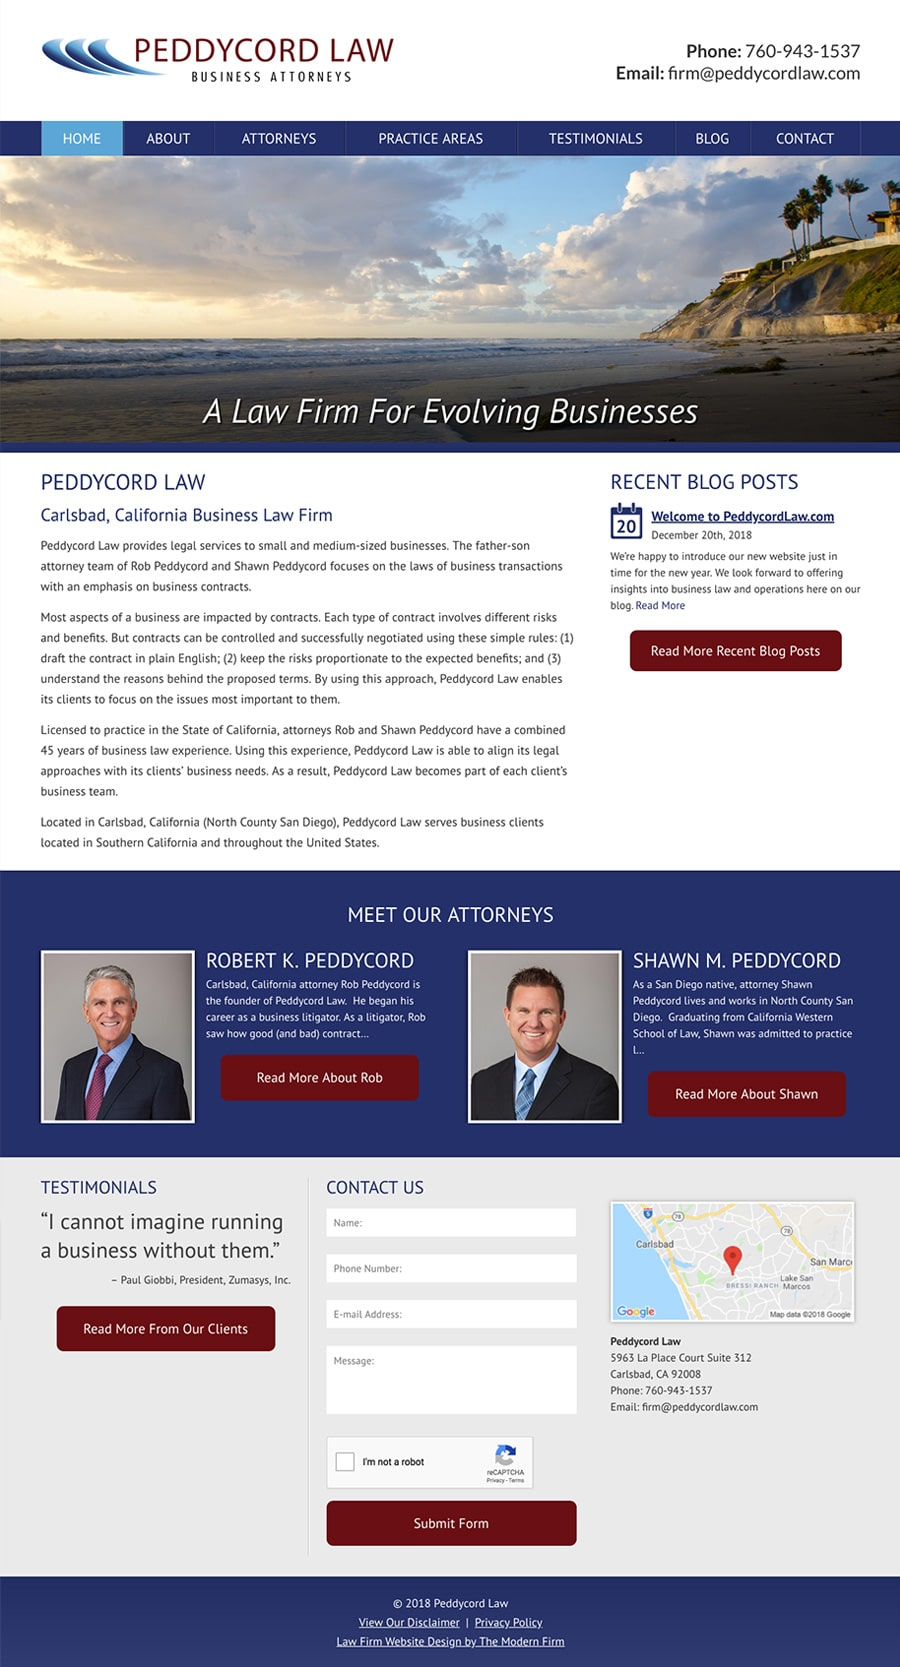 Law Firm Website Design for Peddycord Law